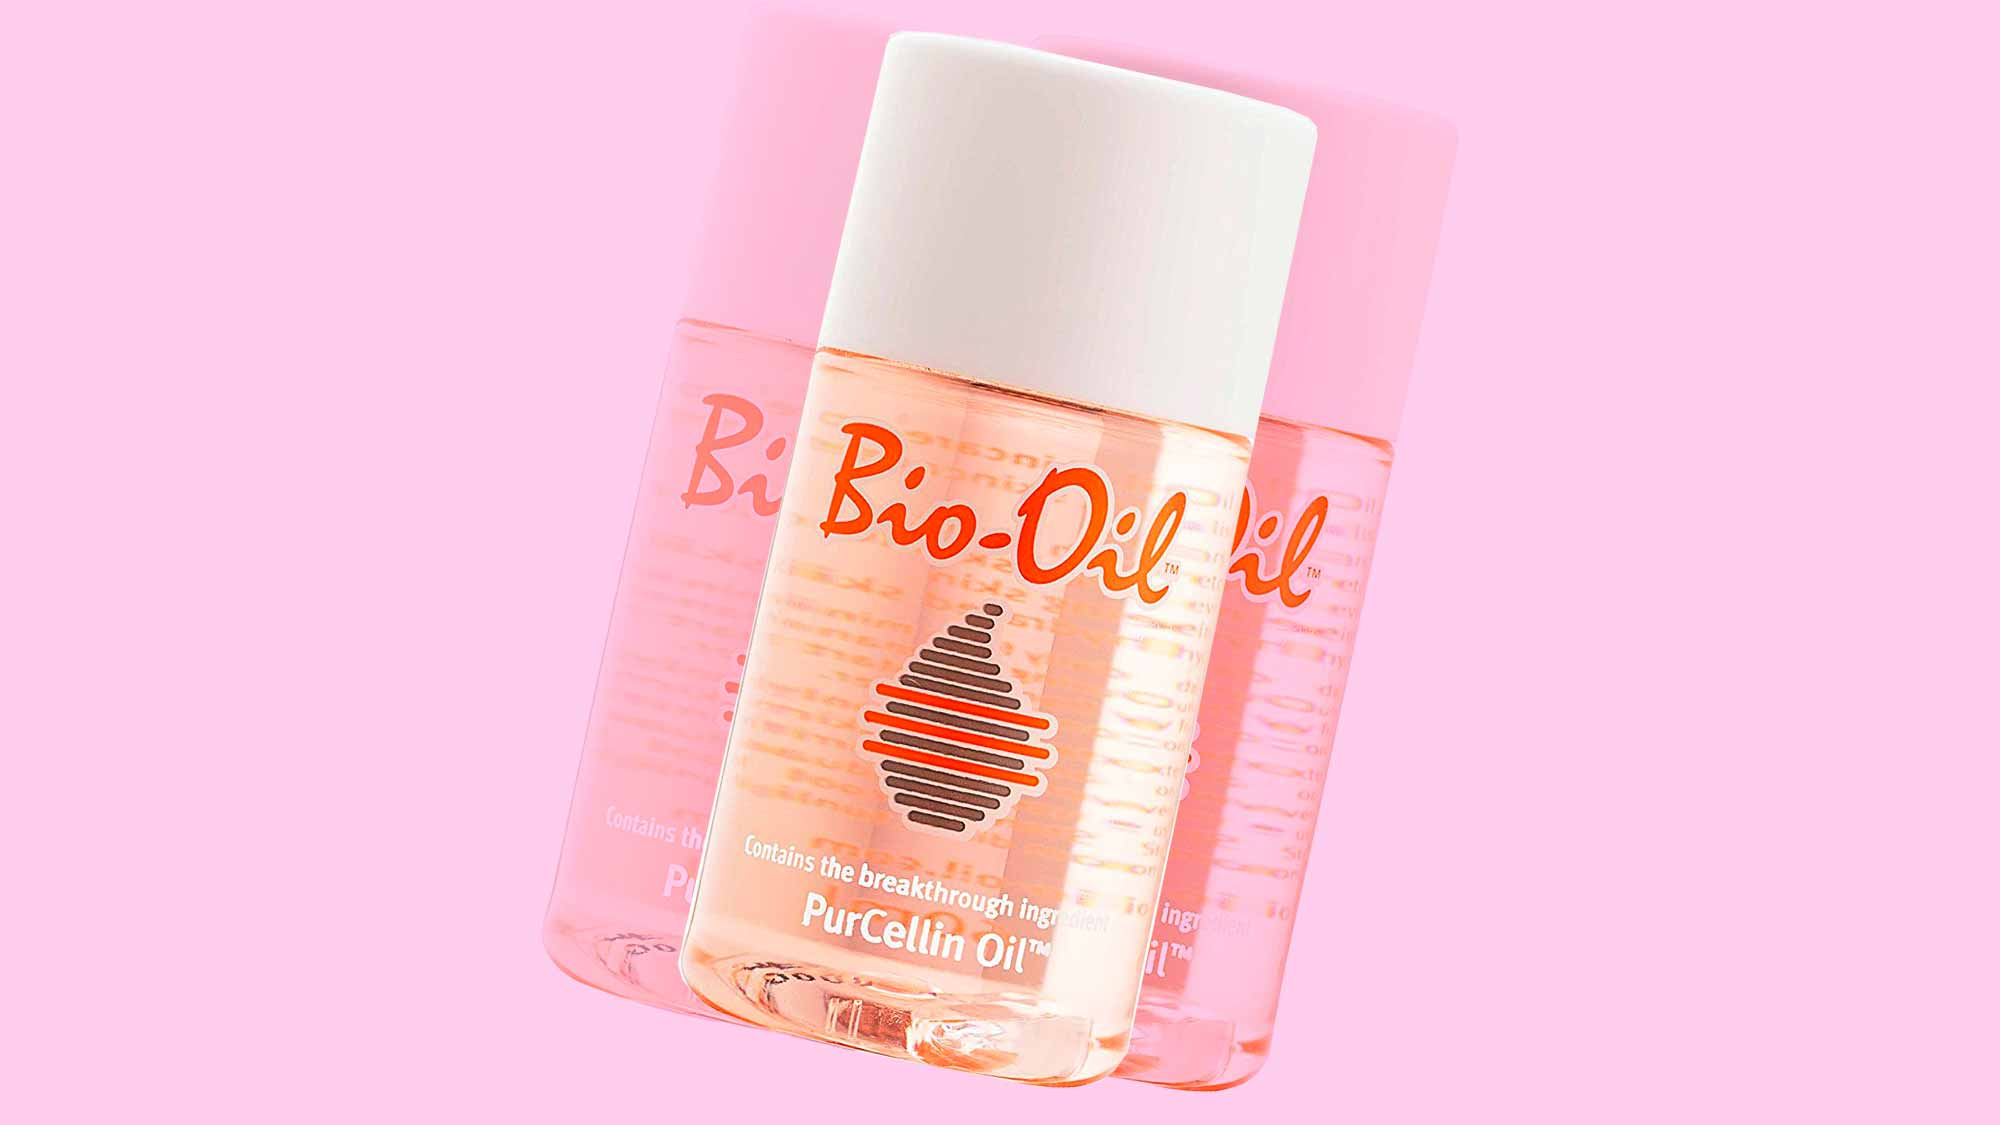 Bio Oil on Face? Learn the Benefits of Using Bio Oil and How to Apply